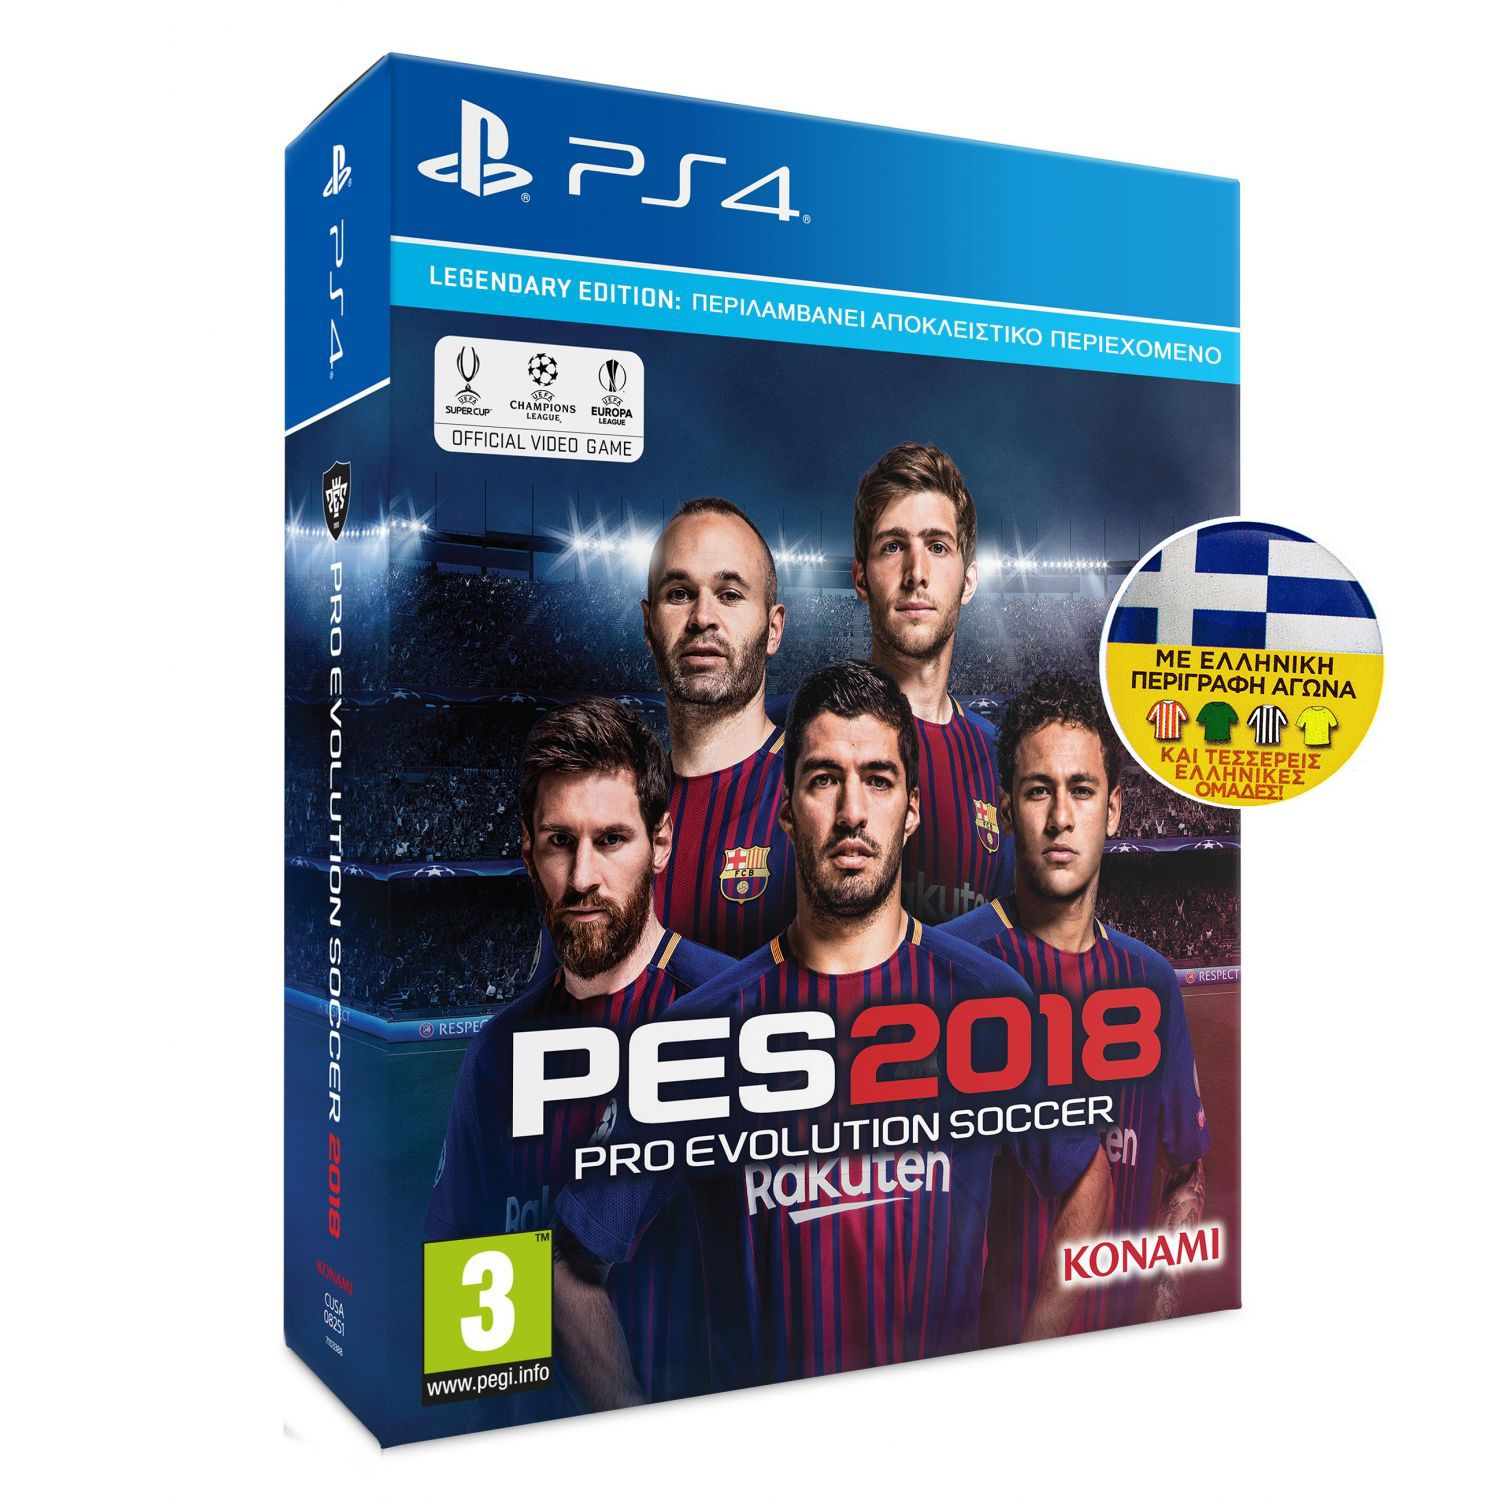 PRO EVOLUTION SOCCER 2018 [ΕΛΛΗΝΙΚΟ] - DAY 1 LEGENDARY EDITION (PS4)